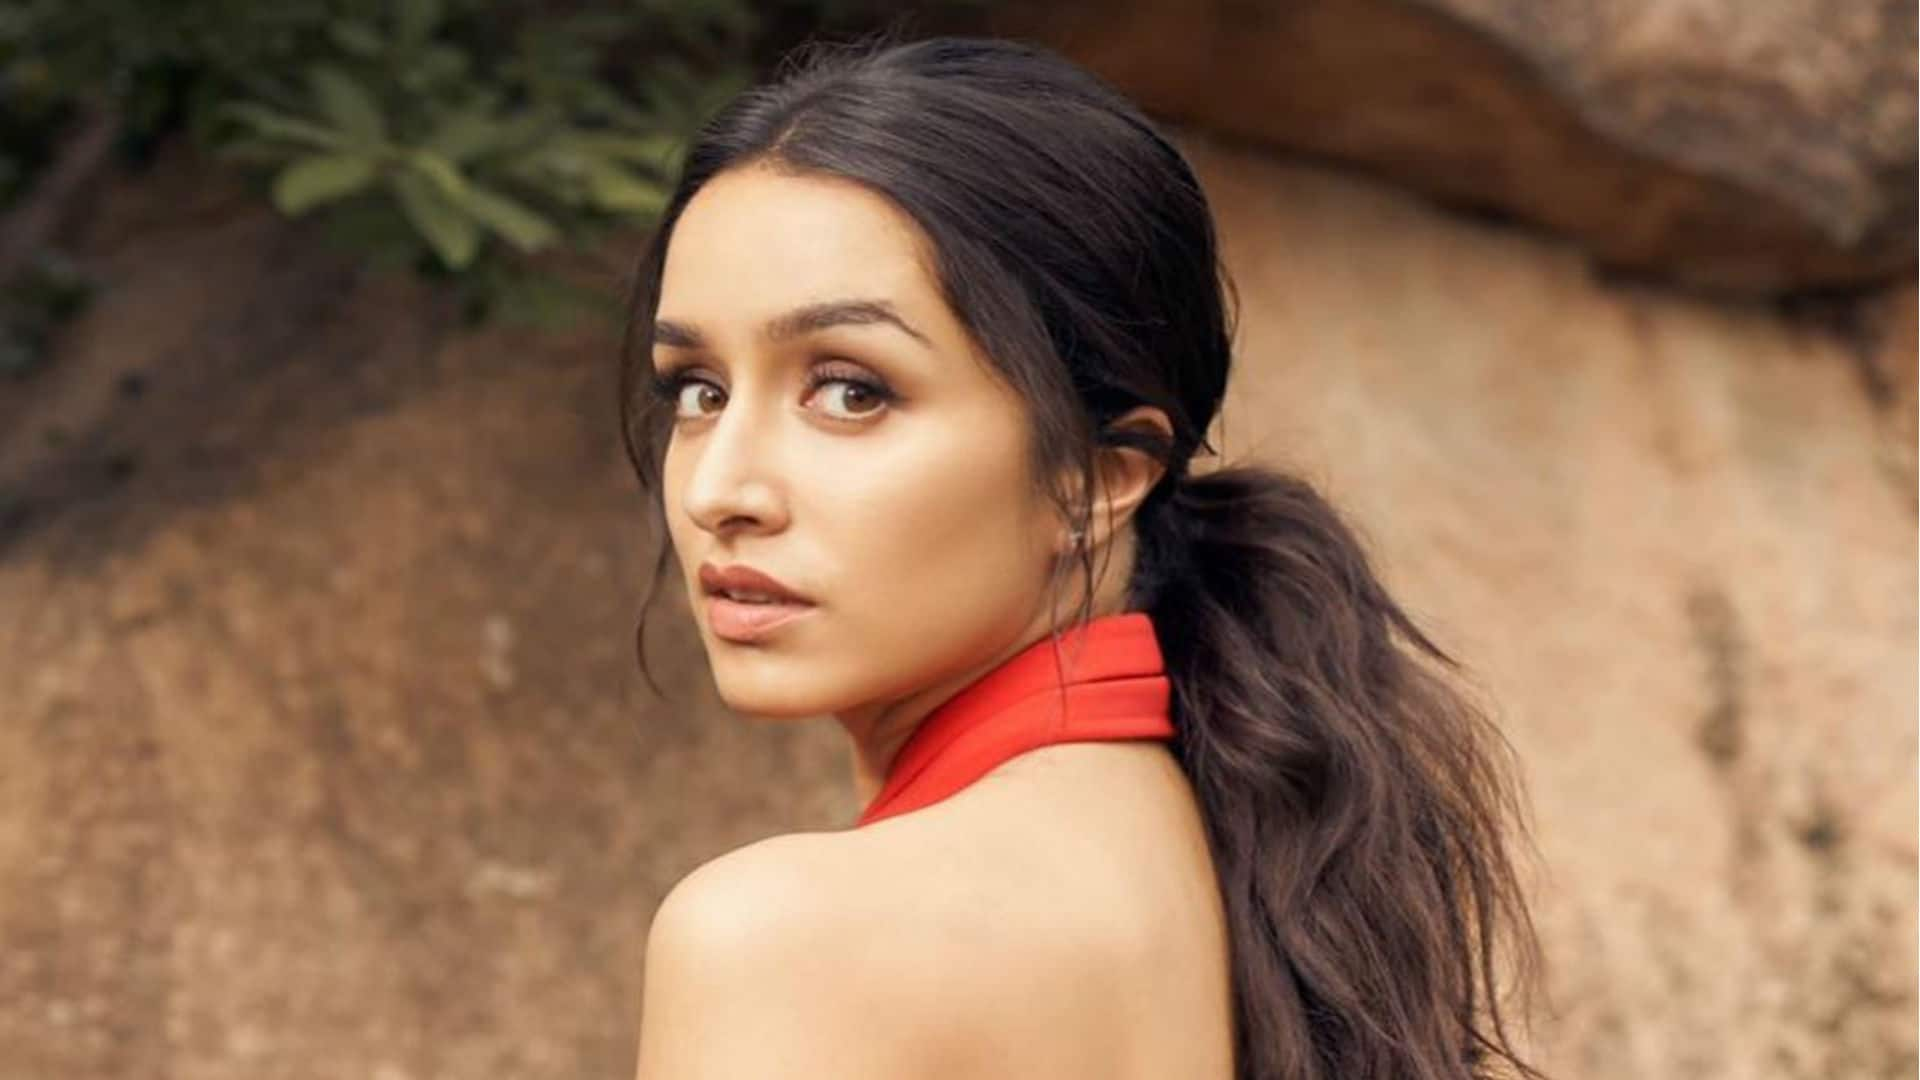 Shraddha Kapoor Proves Her Box Office Draw Once Again With Back-To-Back 150 Crore Smash Hits!